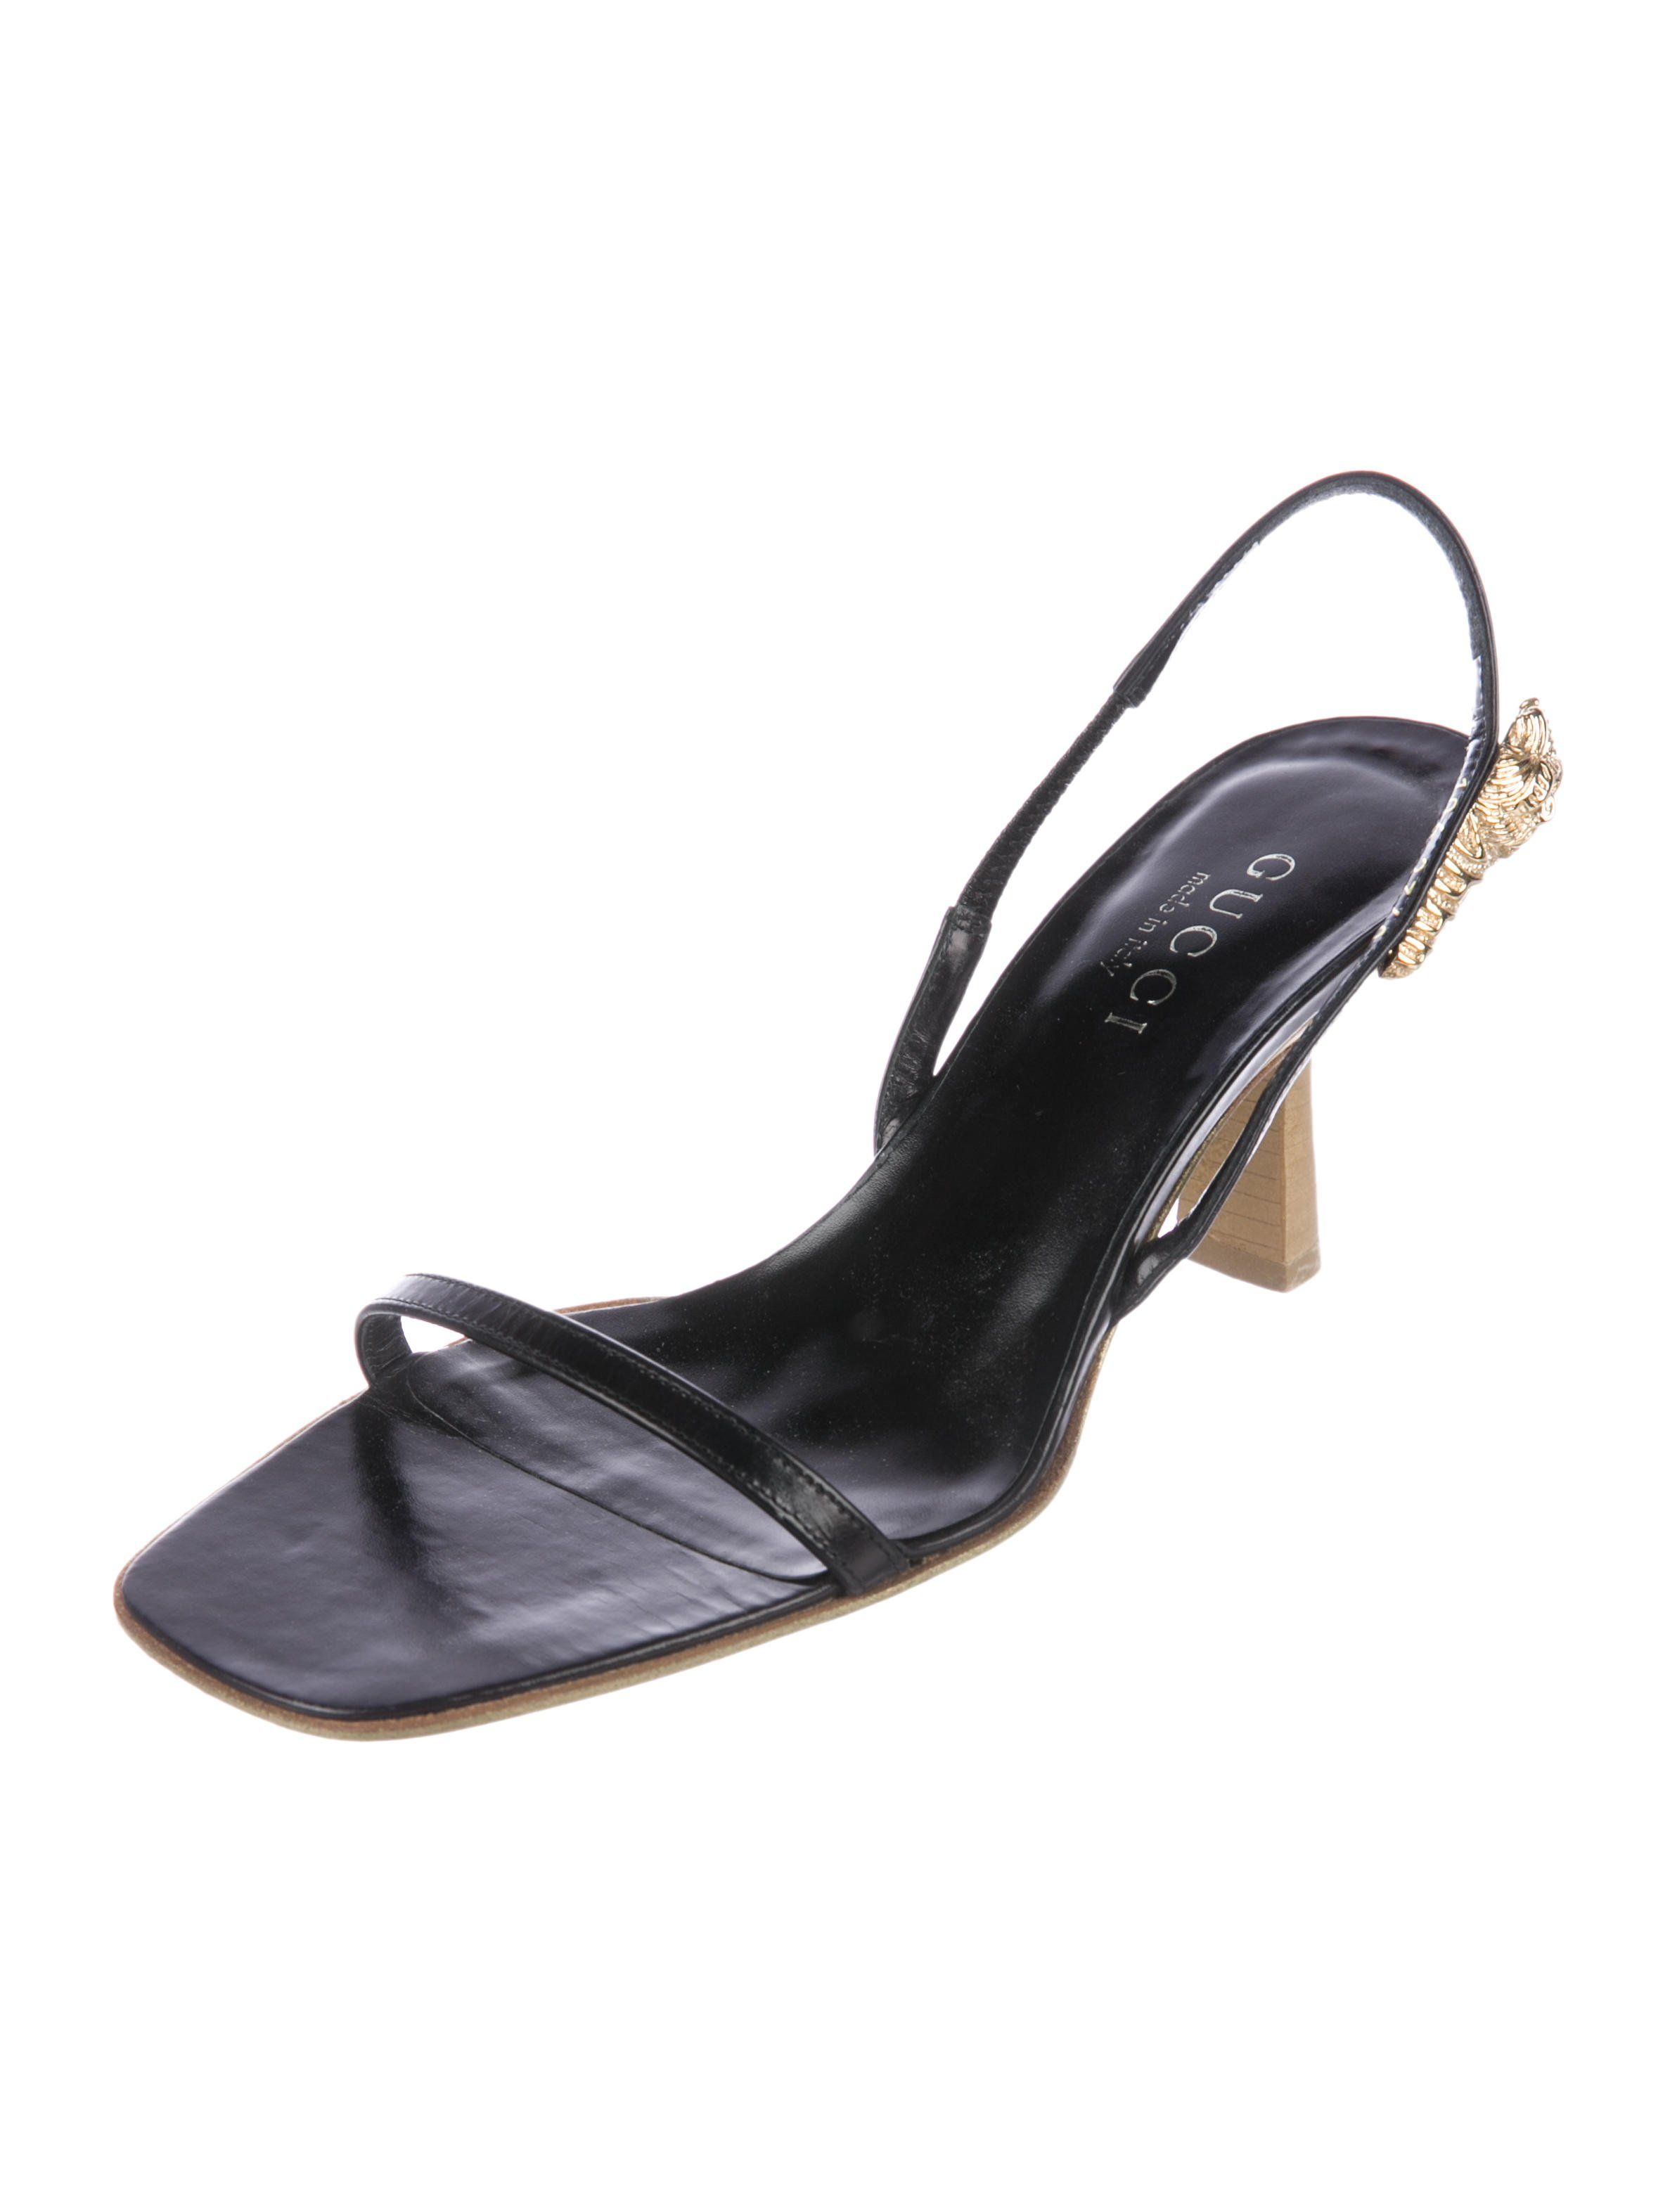 c367ea0e773d Black leather Gucci slingback sandals with tonal stitching and stacked  heels. Includes box.